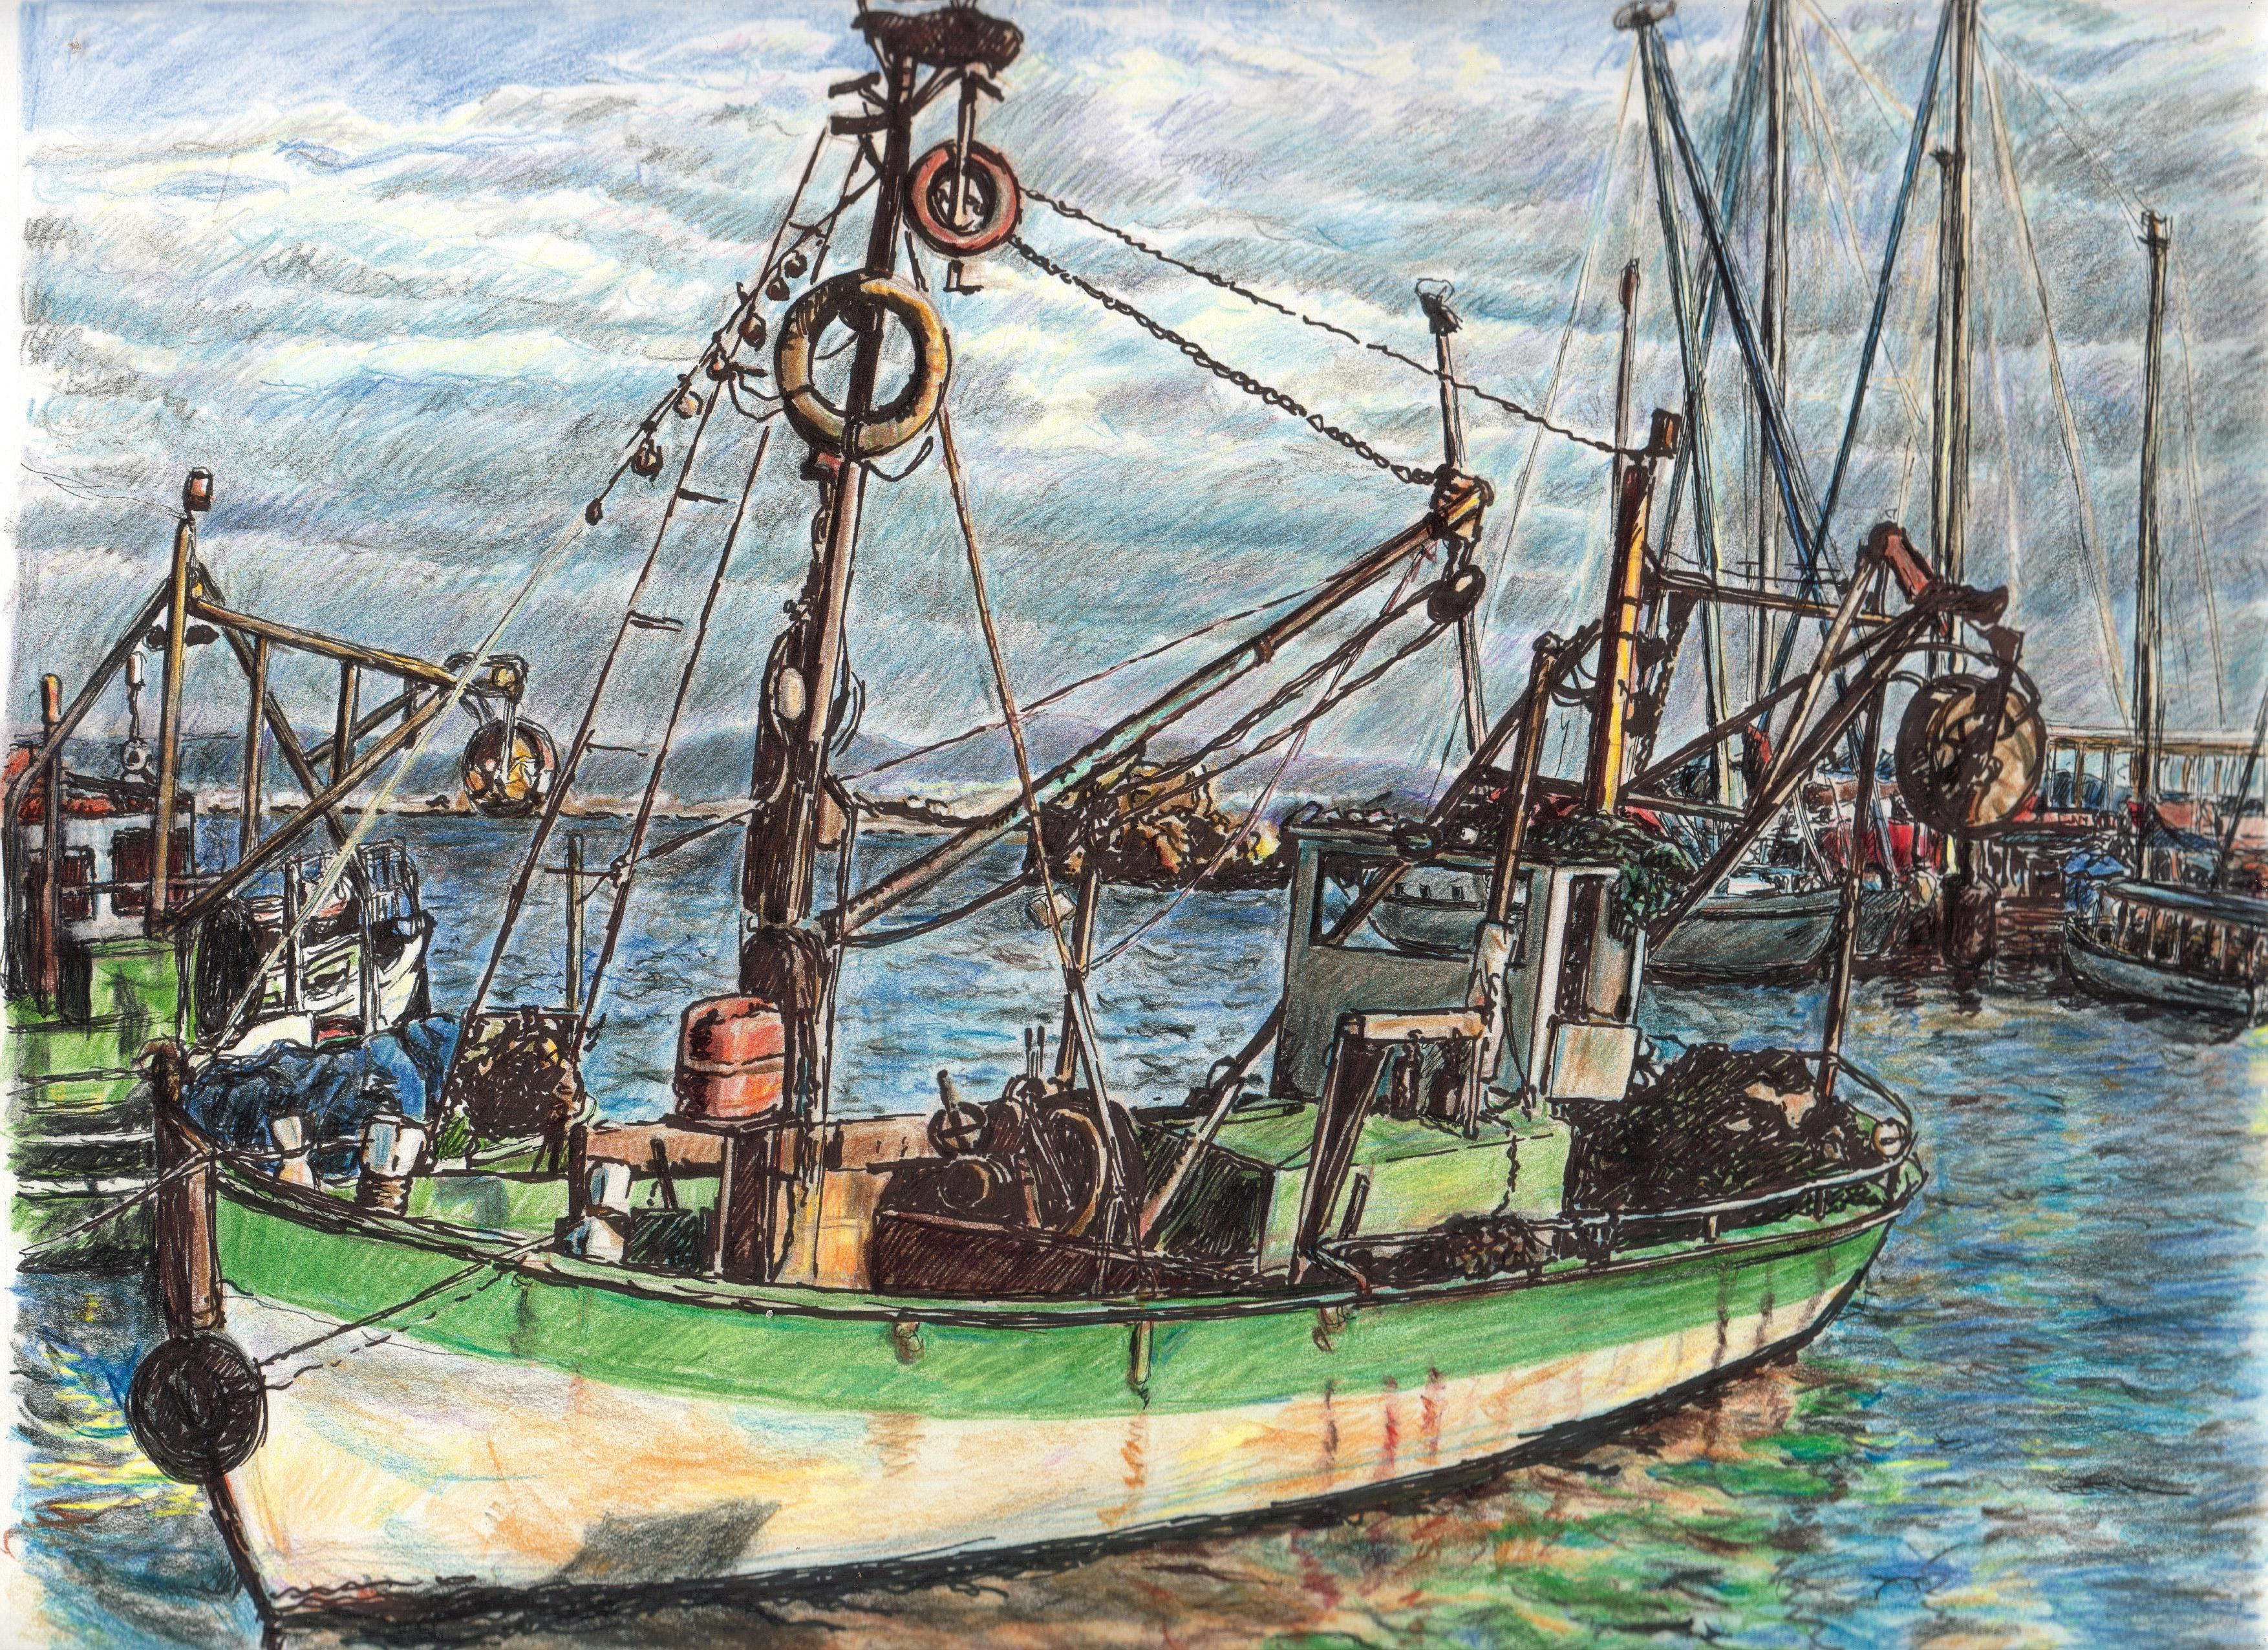 Fishing Boat in Acco (Acre)